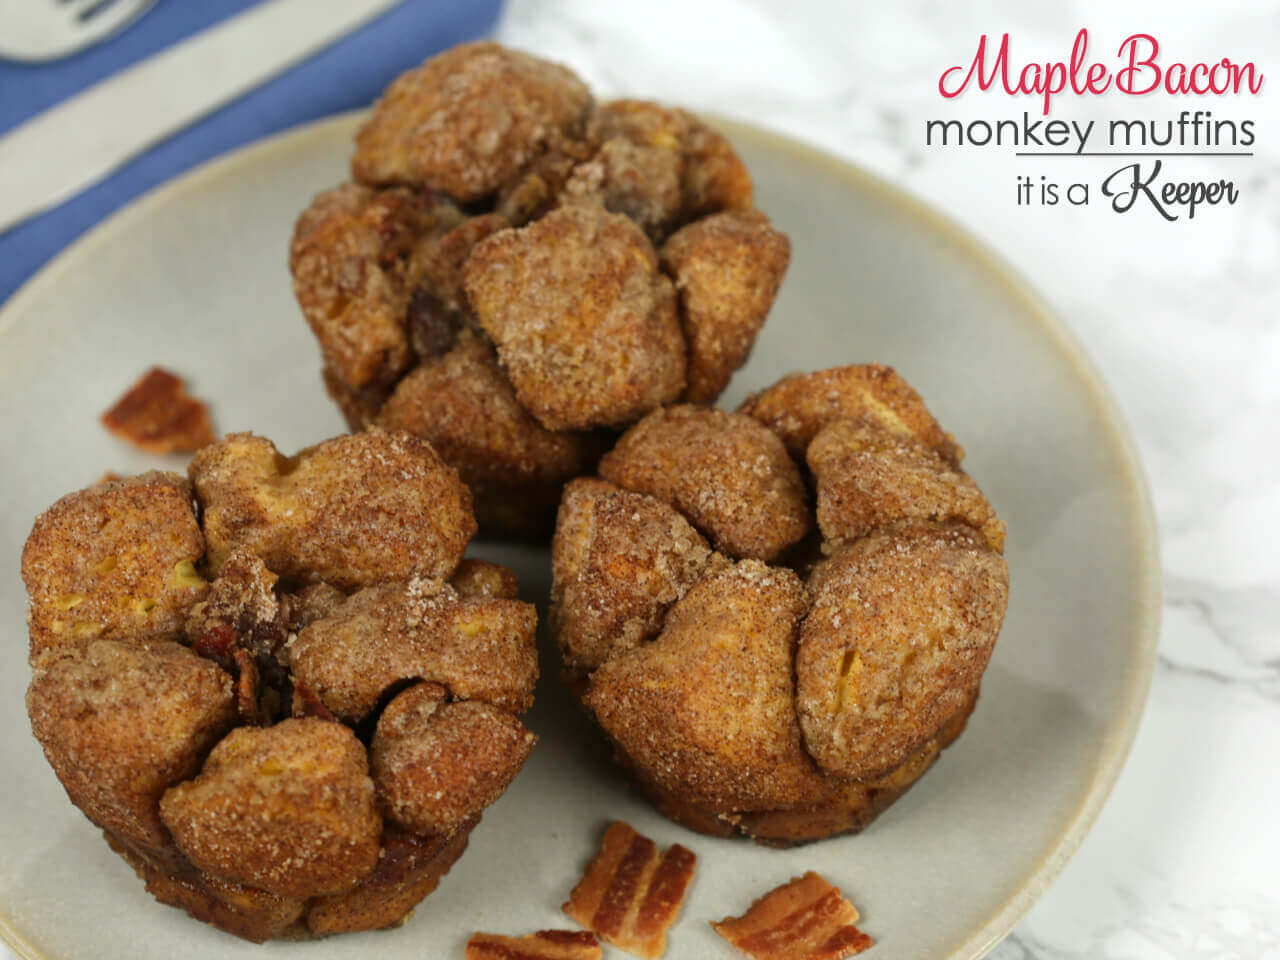 Maple Bacon Monkey Muffins - these easy muffins are a fun twist on monkey bread